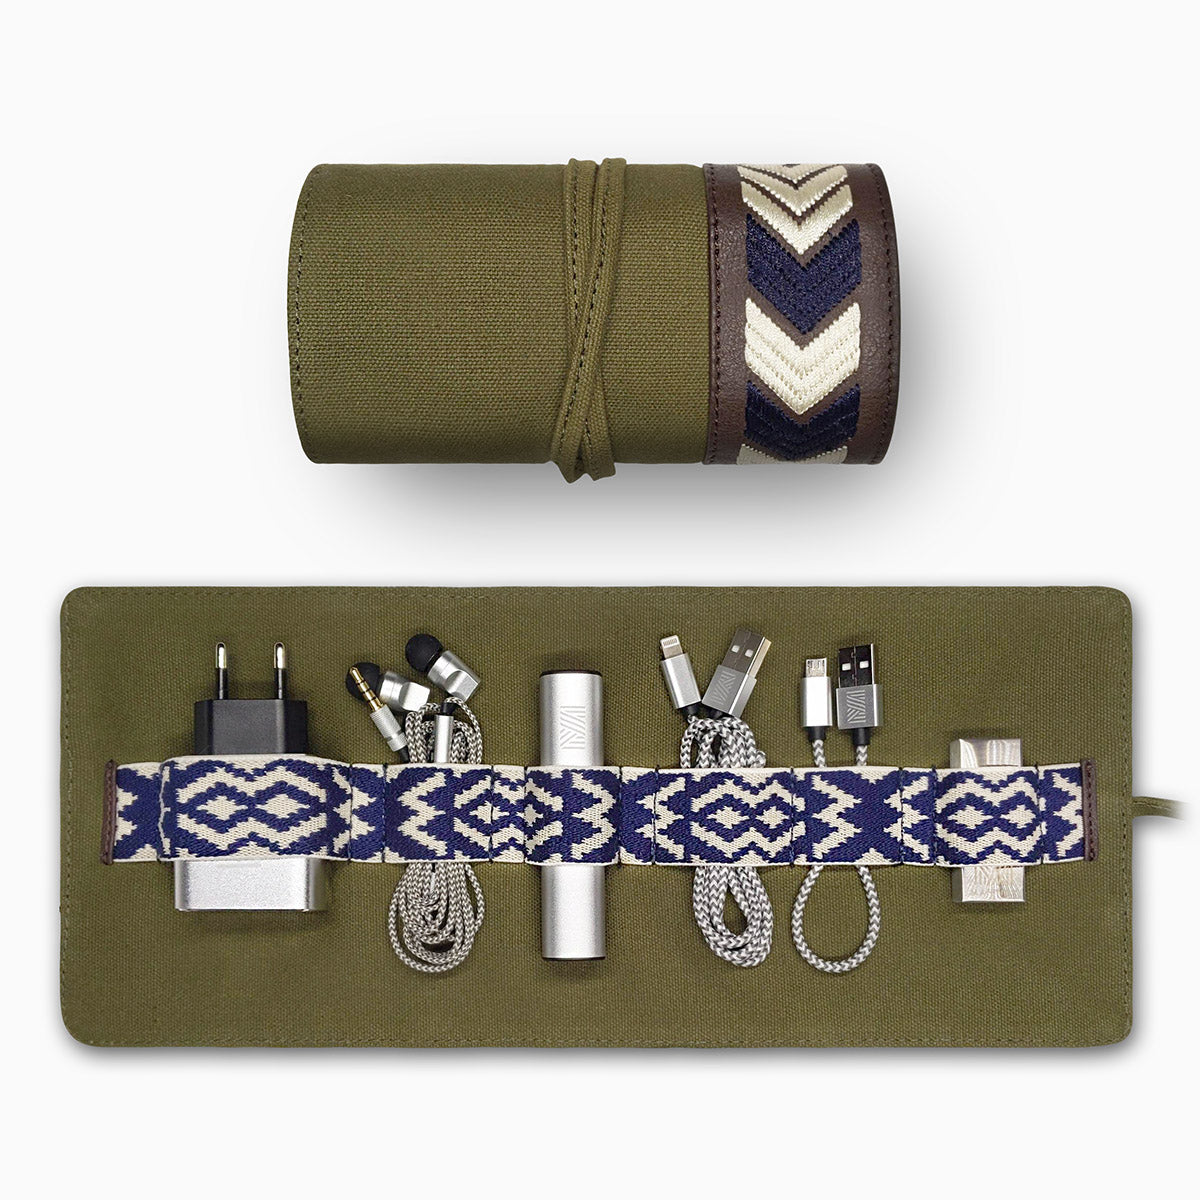 Gaucho Canvas TechRoll, Khaki: Mobile Phone Accessories Kit + Power Bank